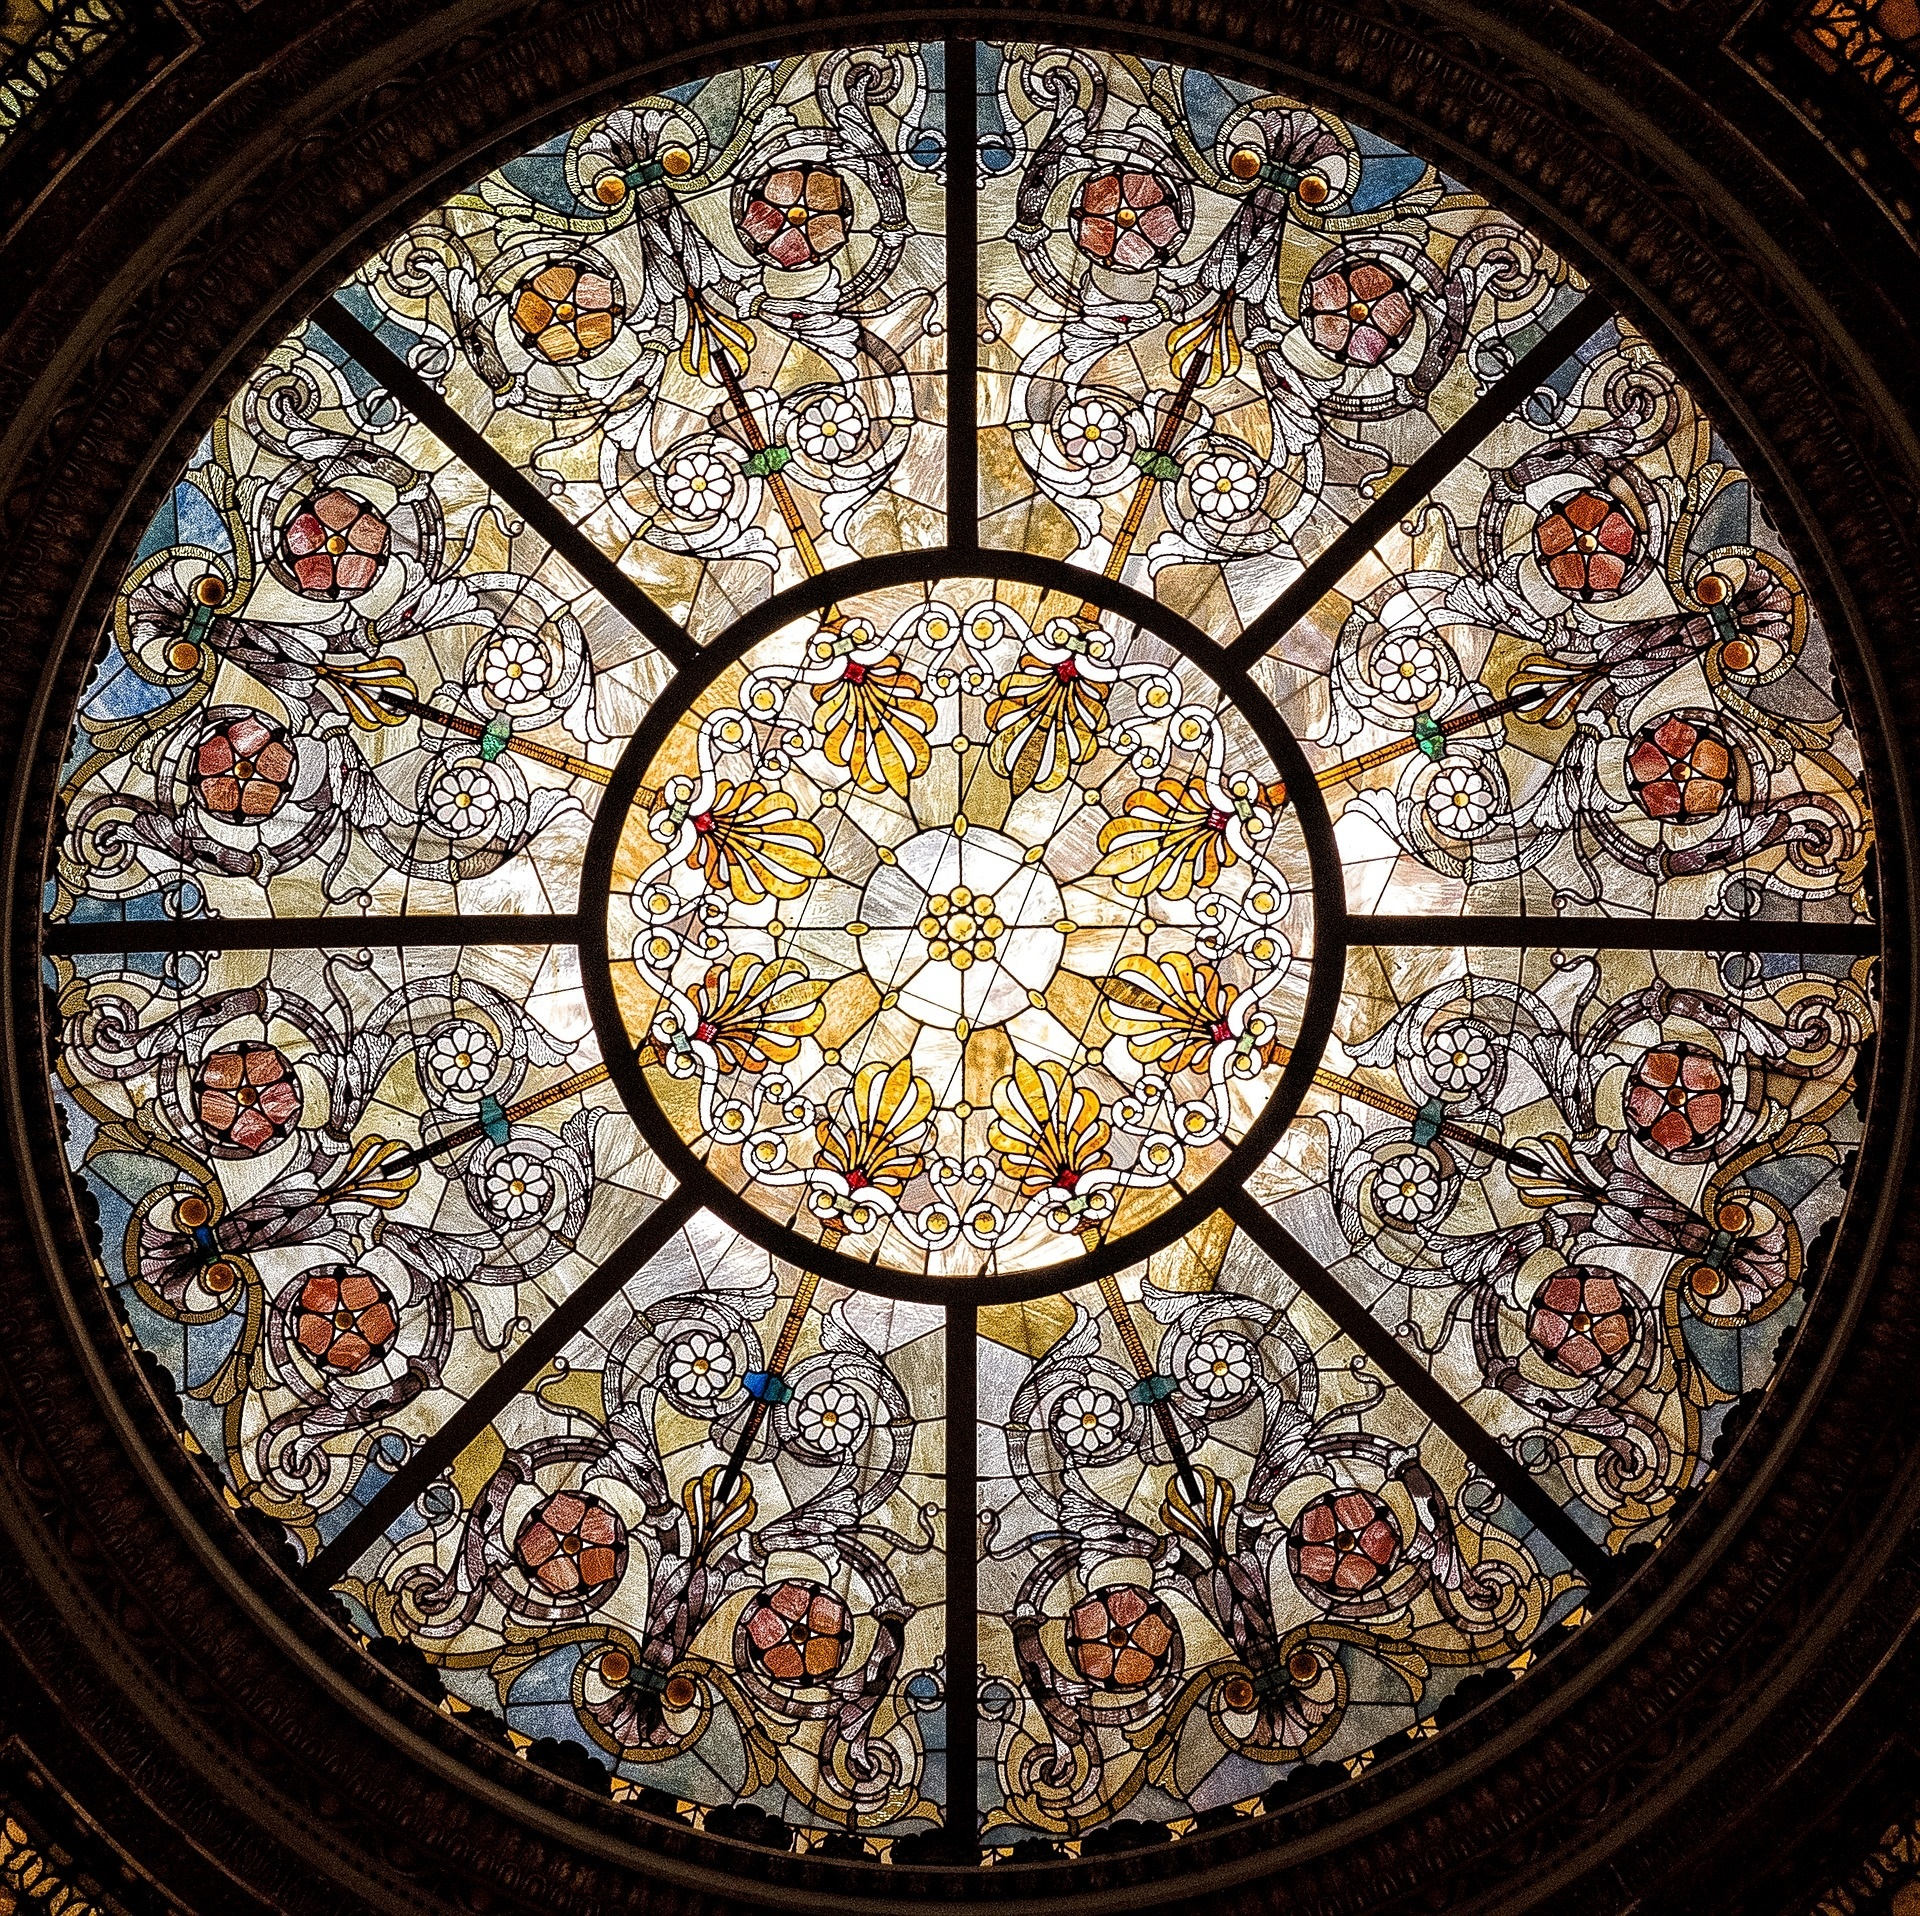 3d Wallpaper Interior Design Stained Glass Free Stock Photo Public Domain Pictures